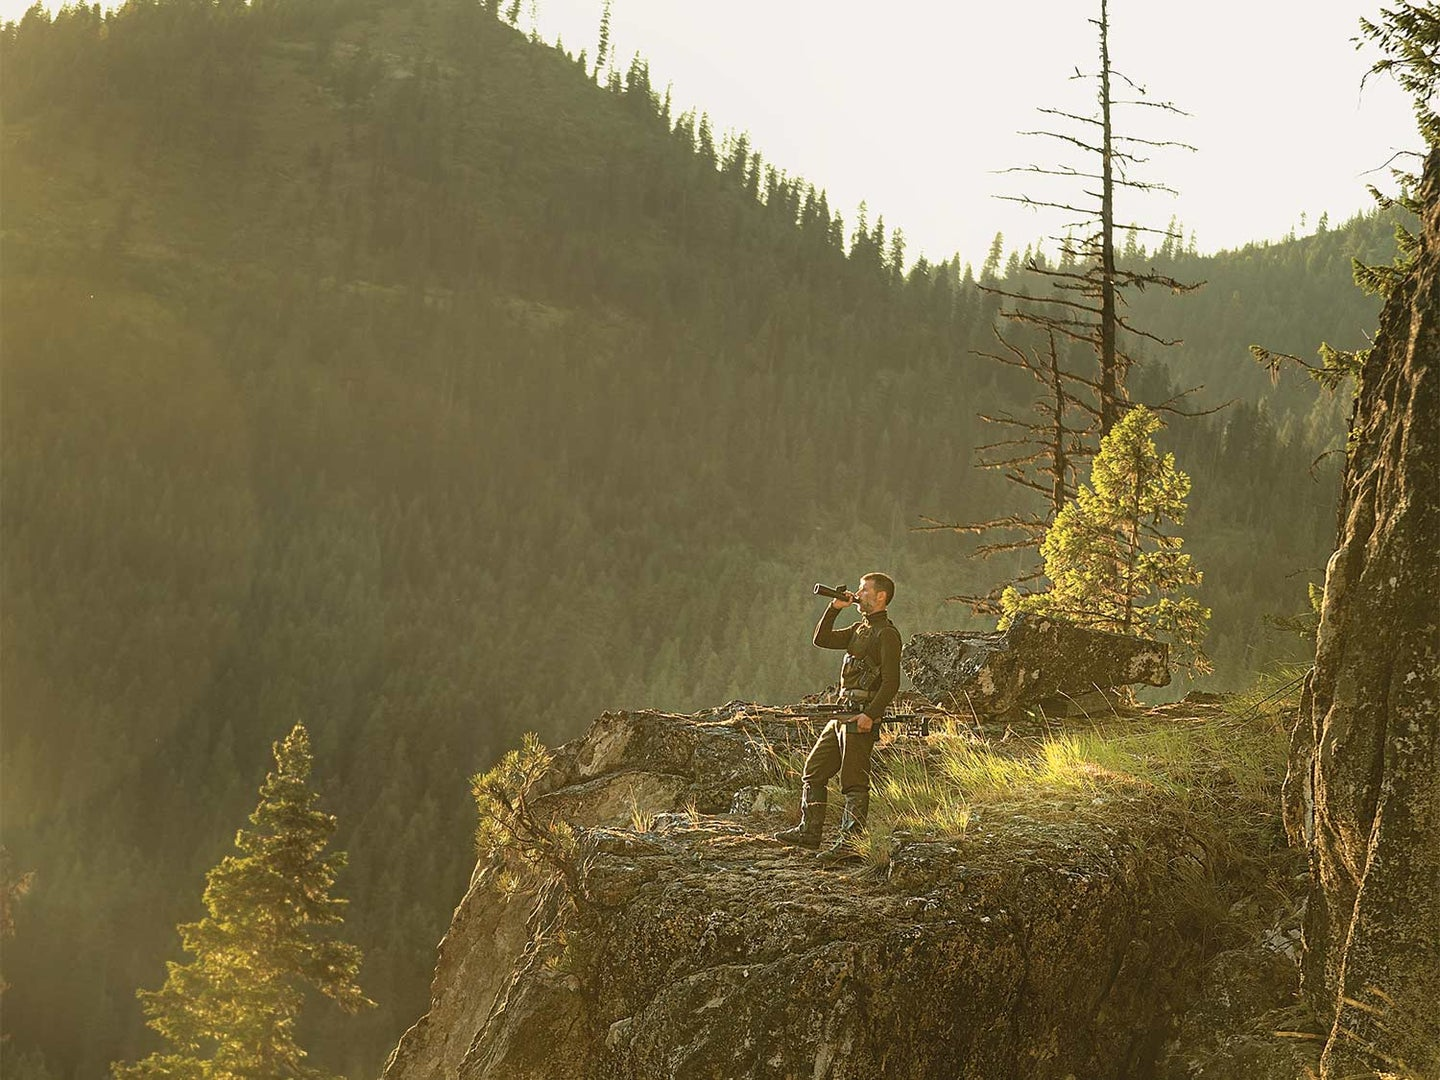 A hunter stands on a hillside scouting and calling for wolves. A forested mountain hillside is in the background.